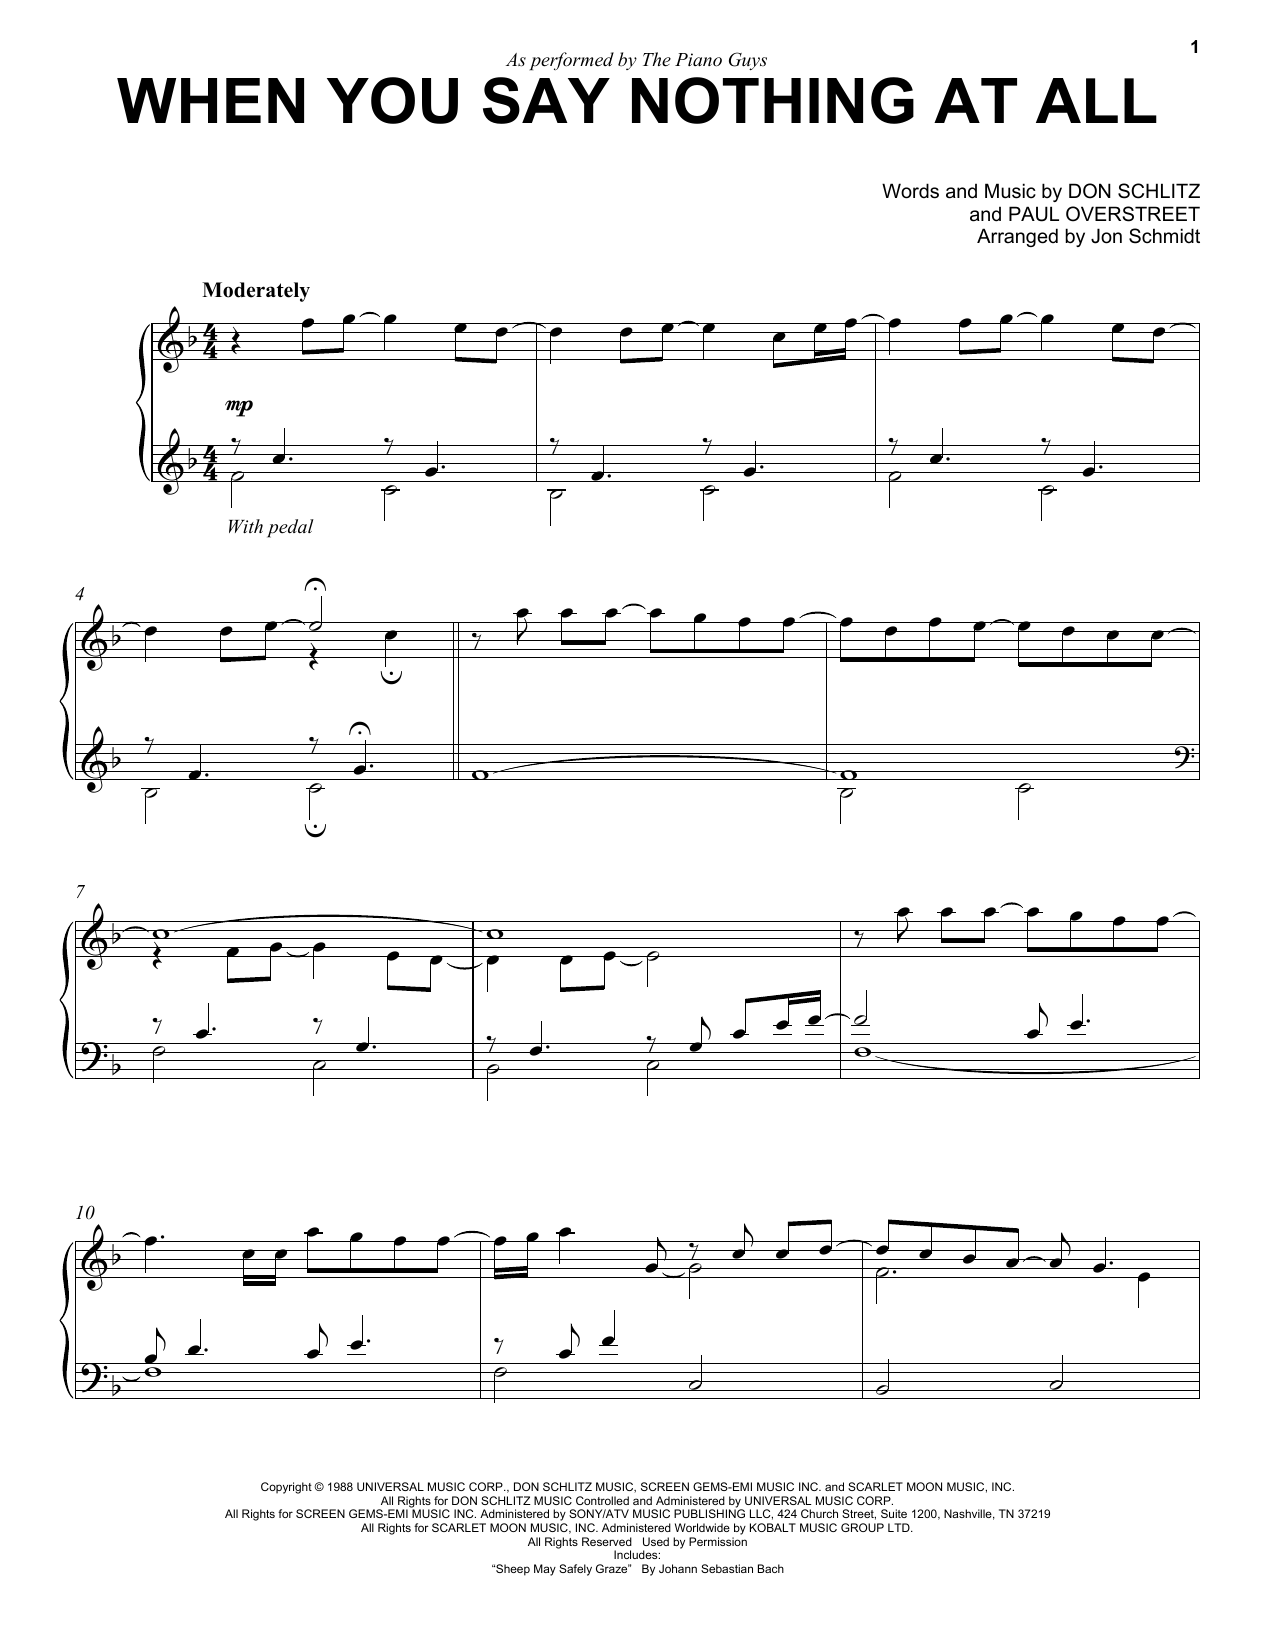 Download The Piano Guys 'When You Say Nothing At All' Digital Sheet Music Notes & Chords and start playing in minutes